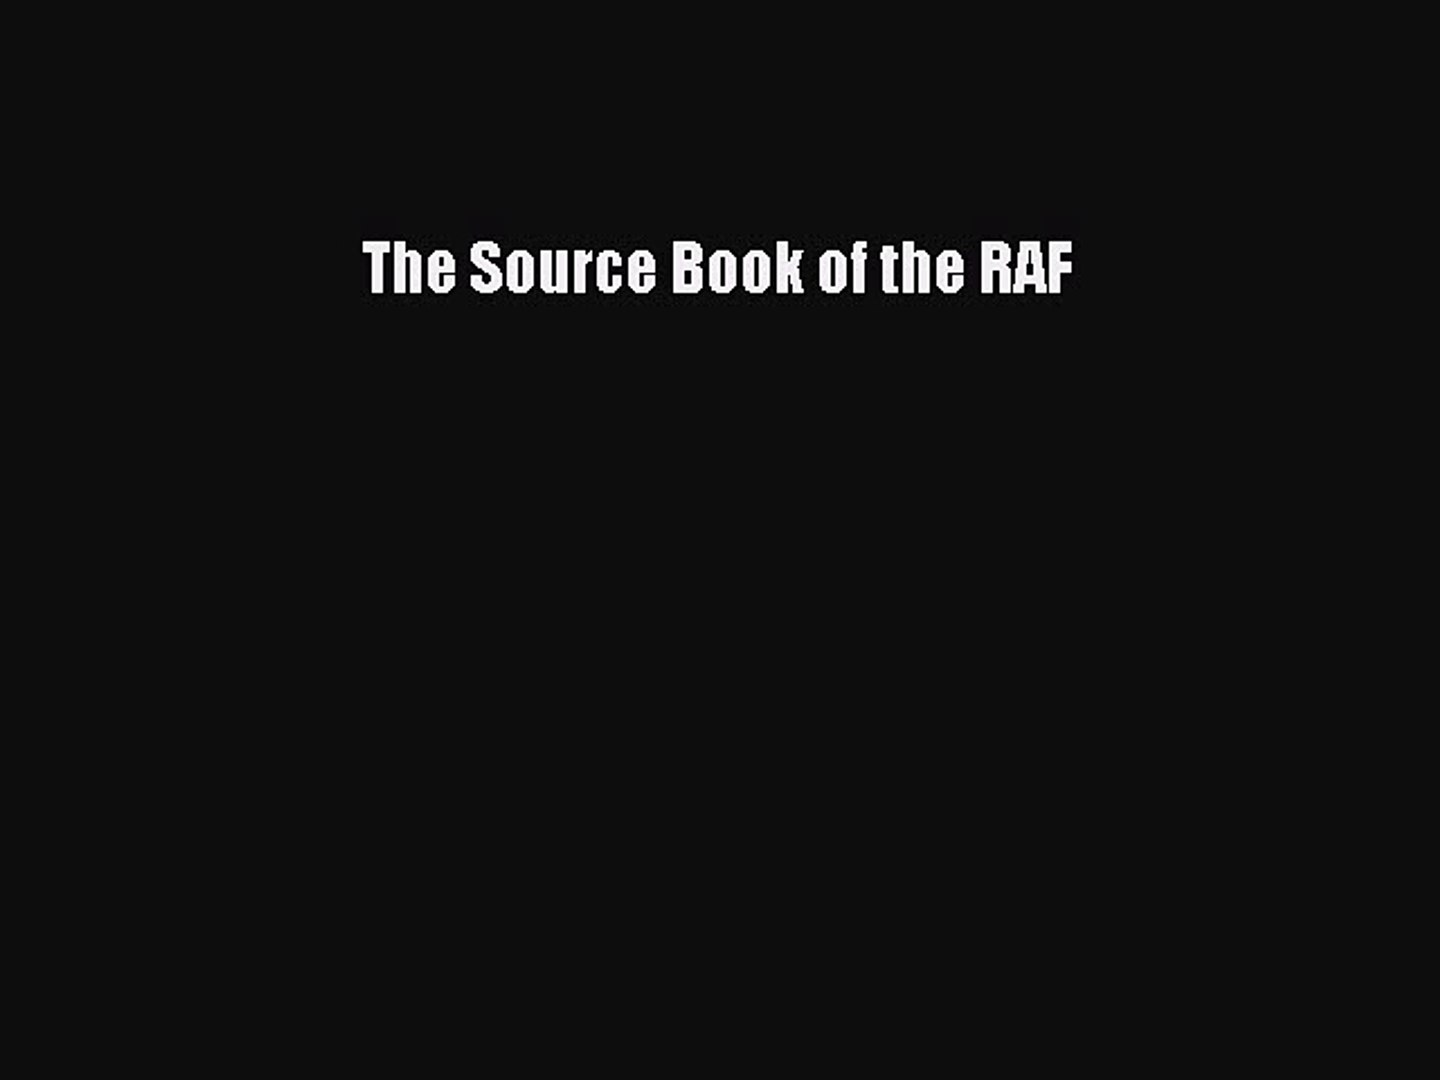 Download The Source Book of the RAF Ebook Free